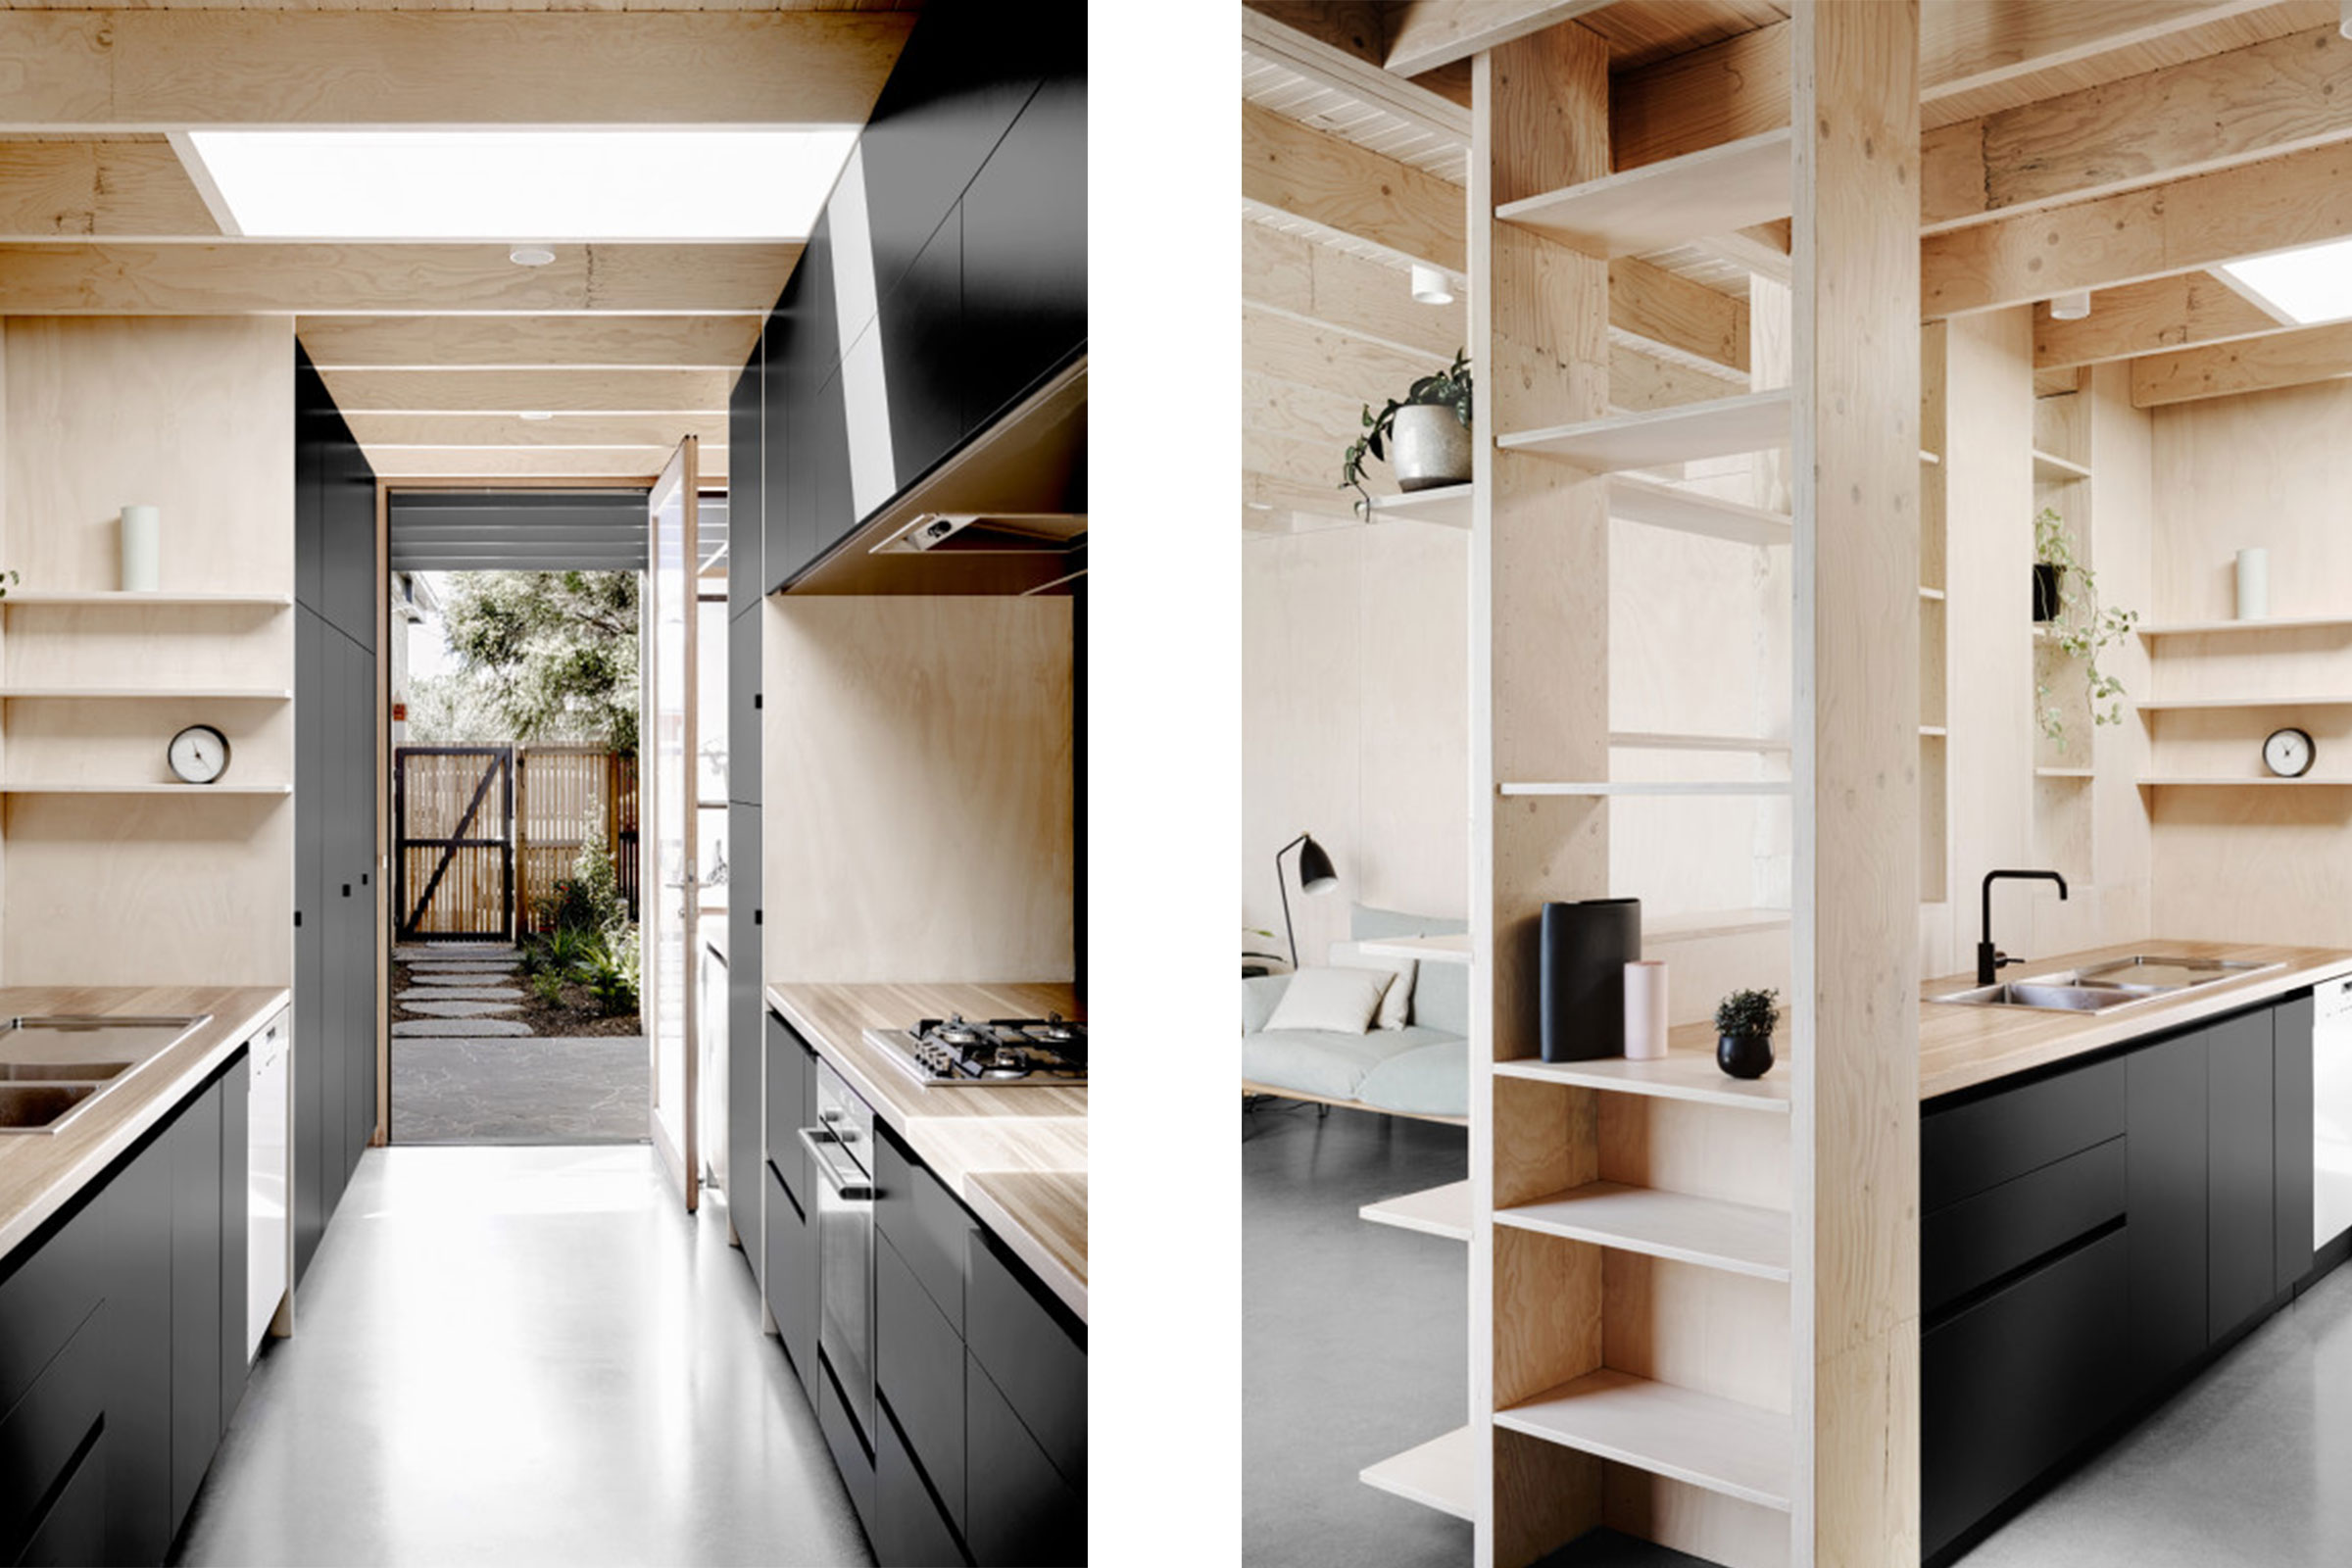 5 Well-Designed Kitchens From Around Australia